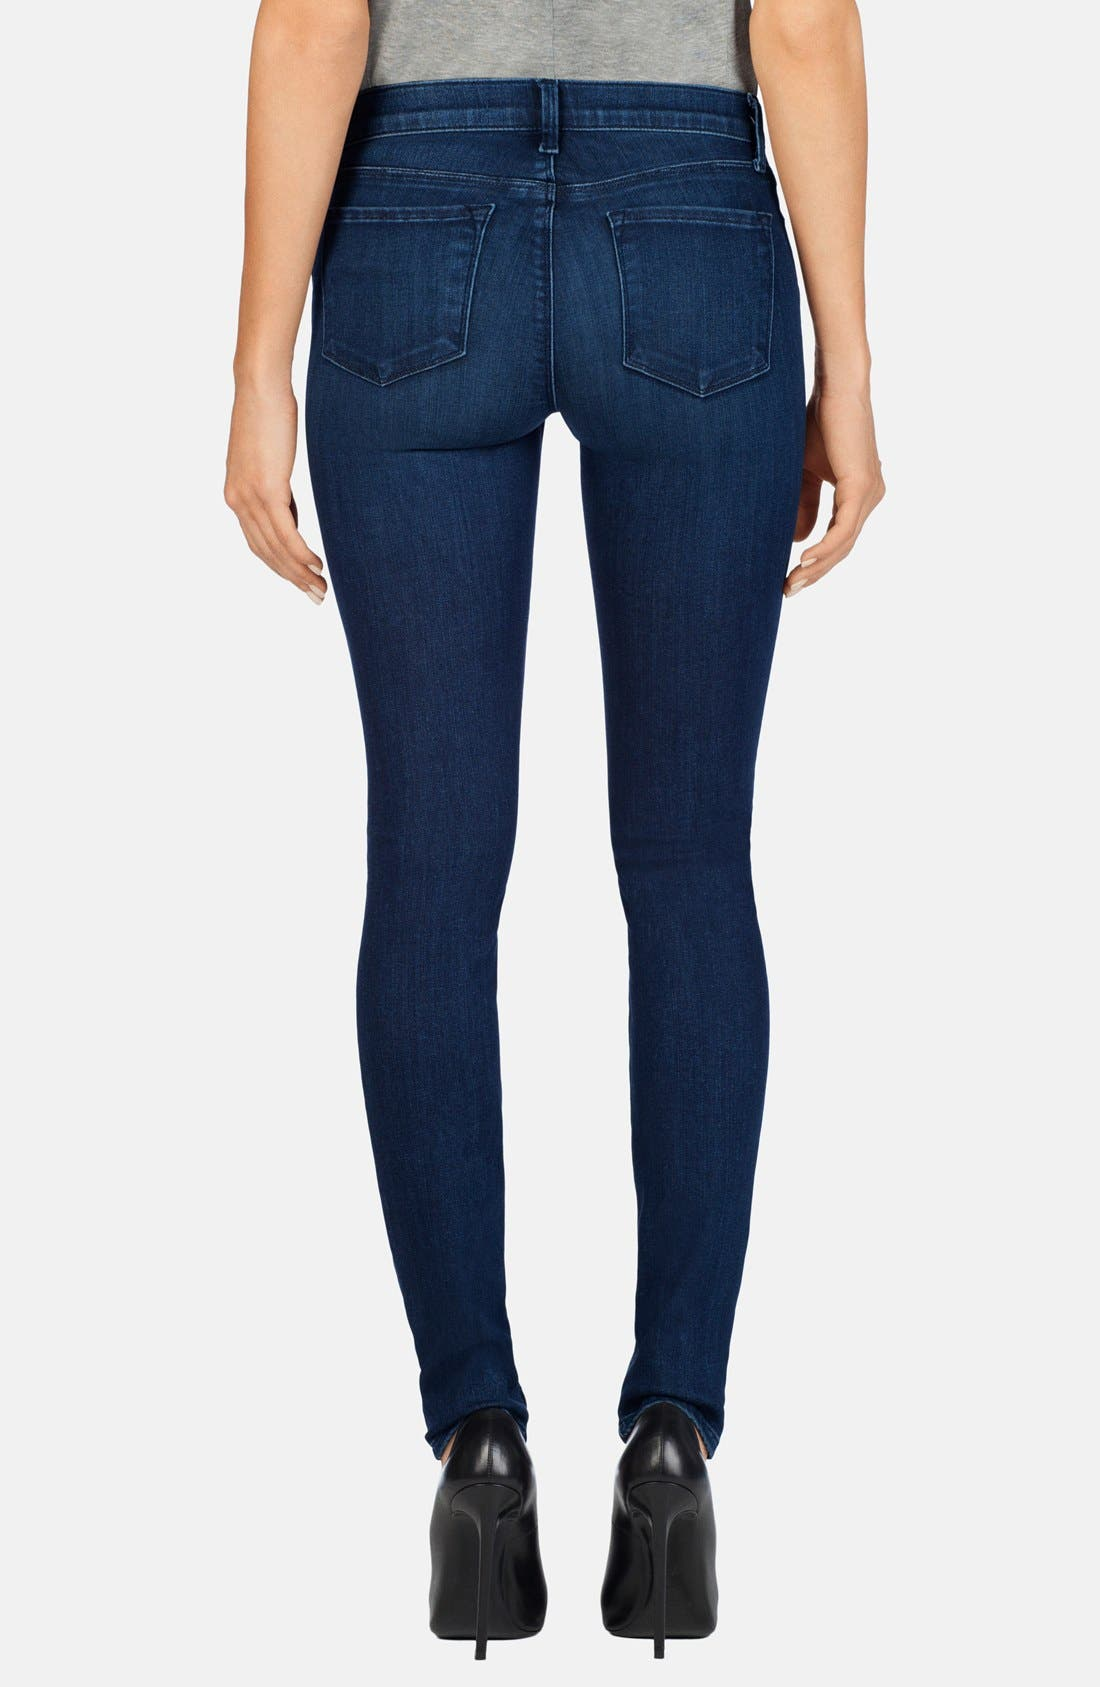 '620' Mid Rise Super Skinny Jeans,                             Alternate thumbnail 3, color,                             FIX